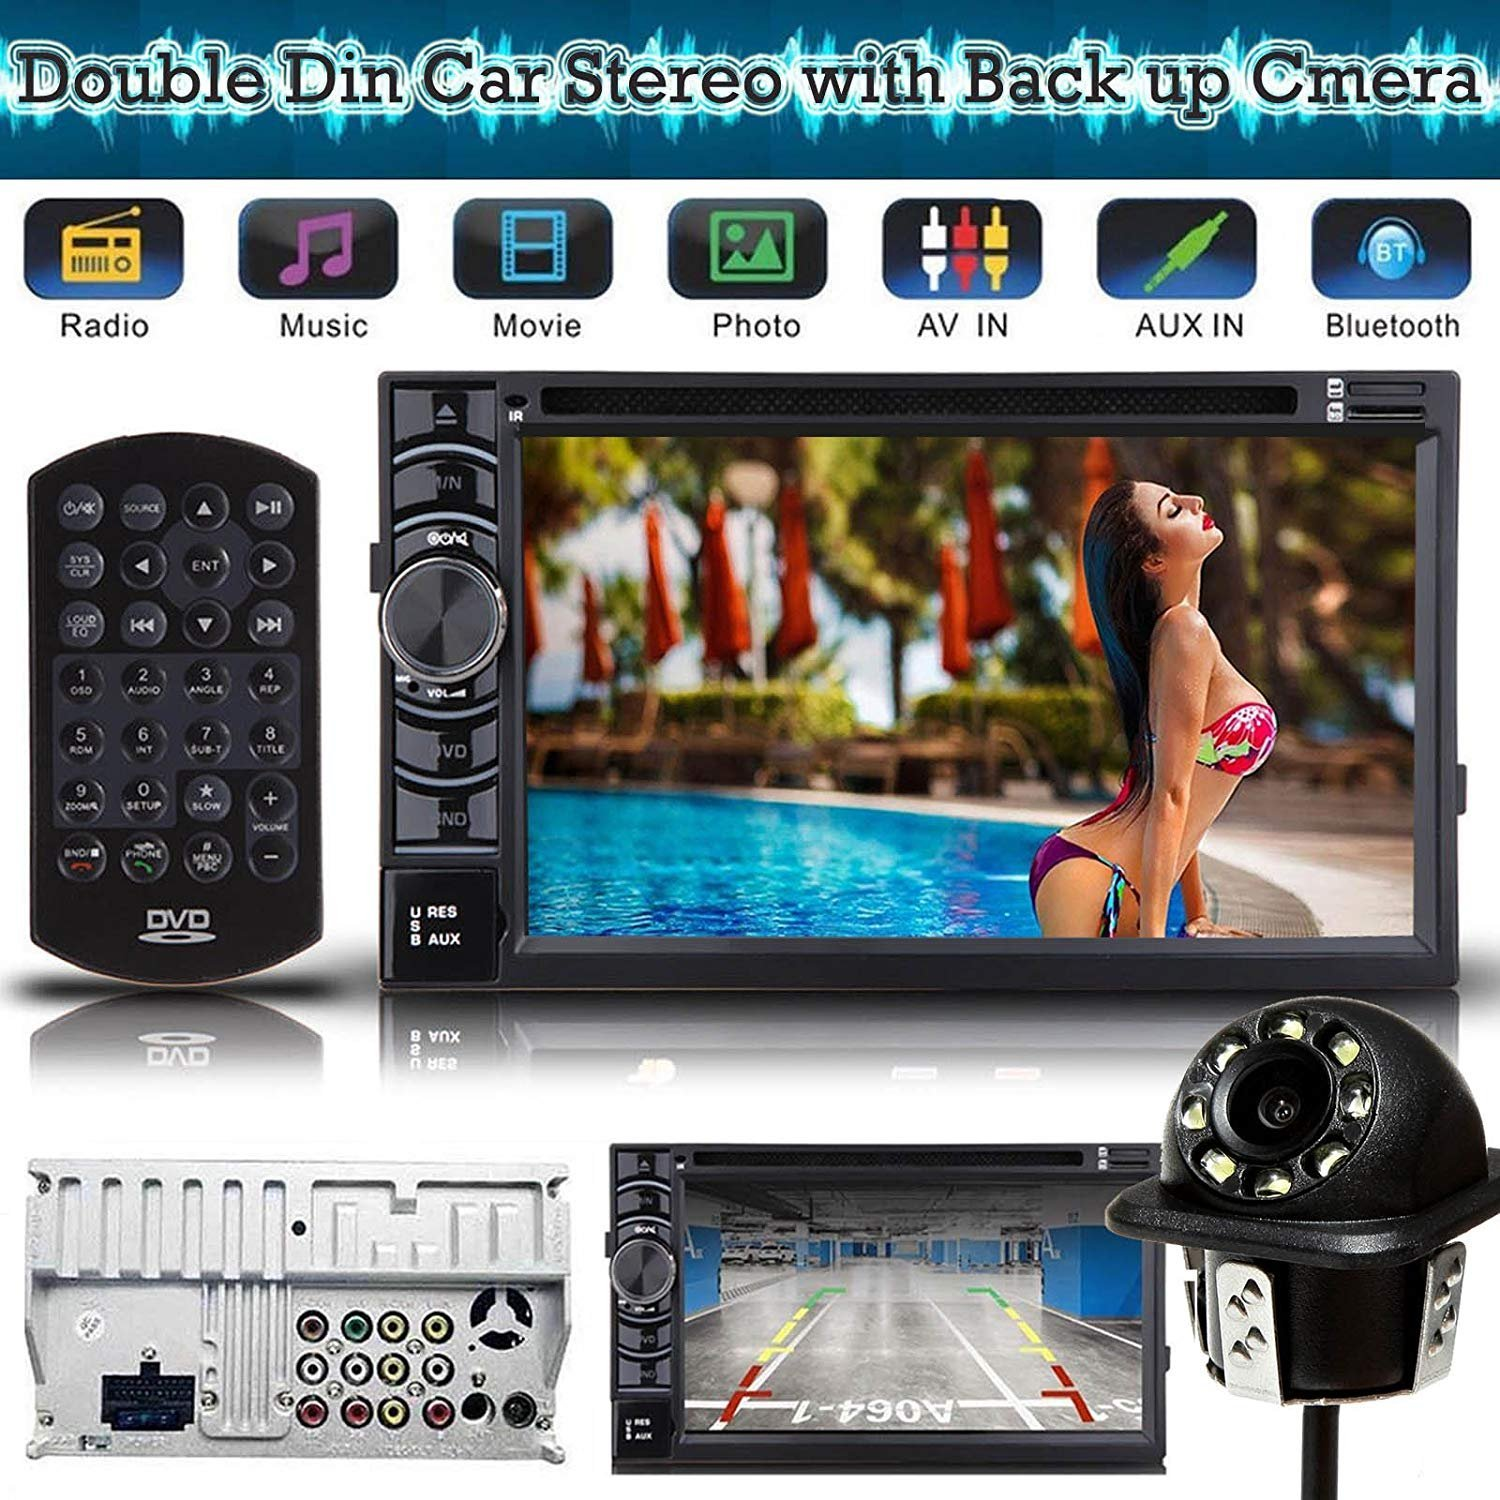 Universal 2 Din Car Stereo Dvd Cd Player Receiver Radio Metra Gmos04 Wiring Interface Connect A New And Retain Bluetooth Touch Screen With Remote Back Up Camera Rear View Clear Parking Assist Cam